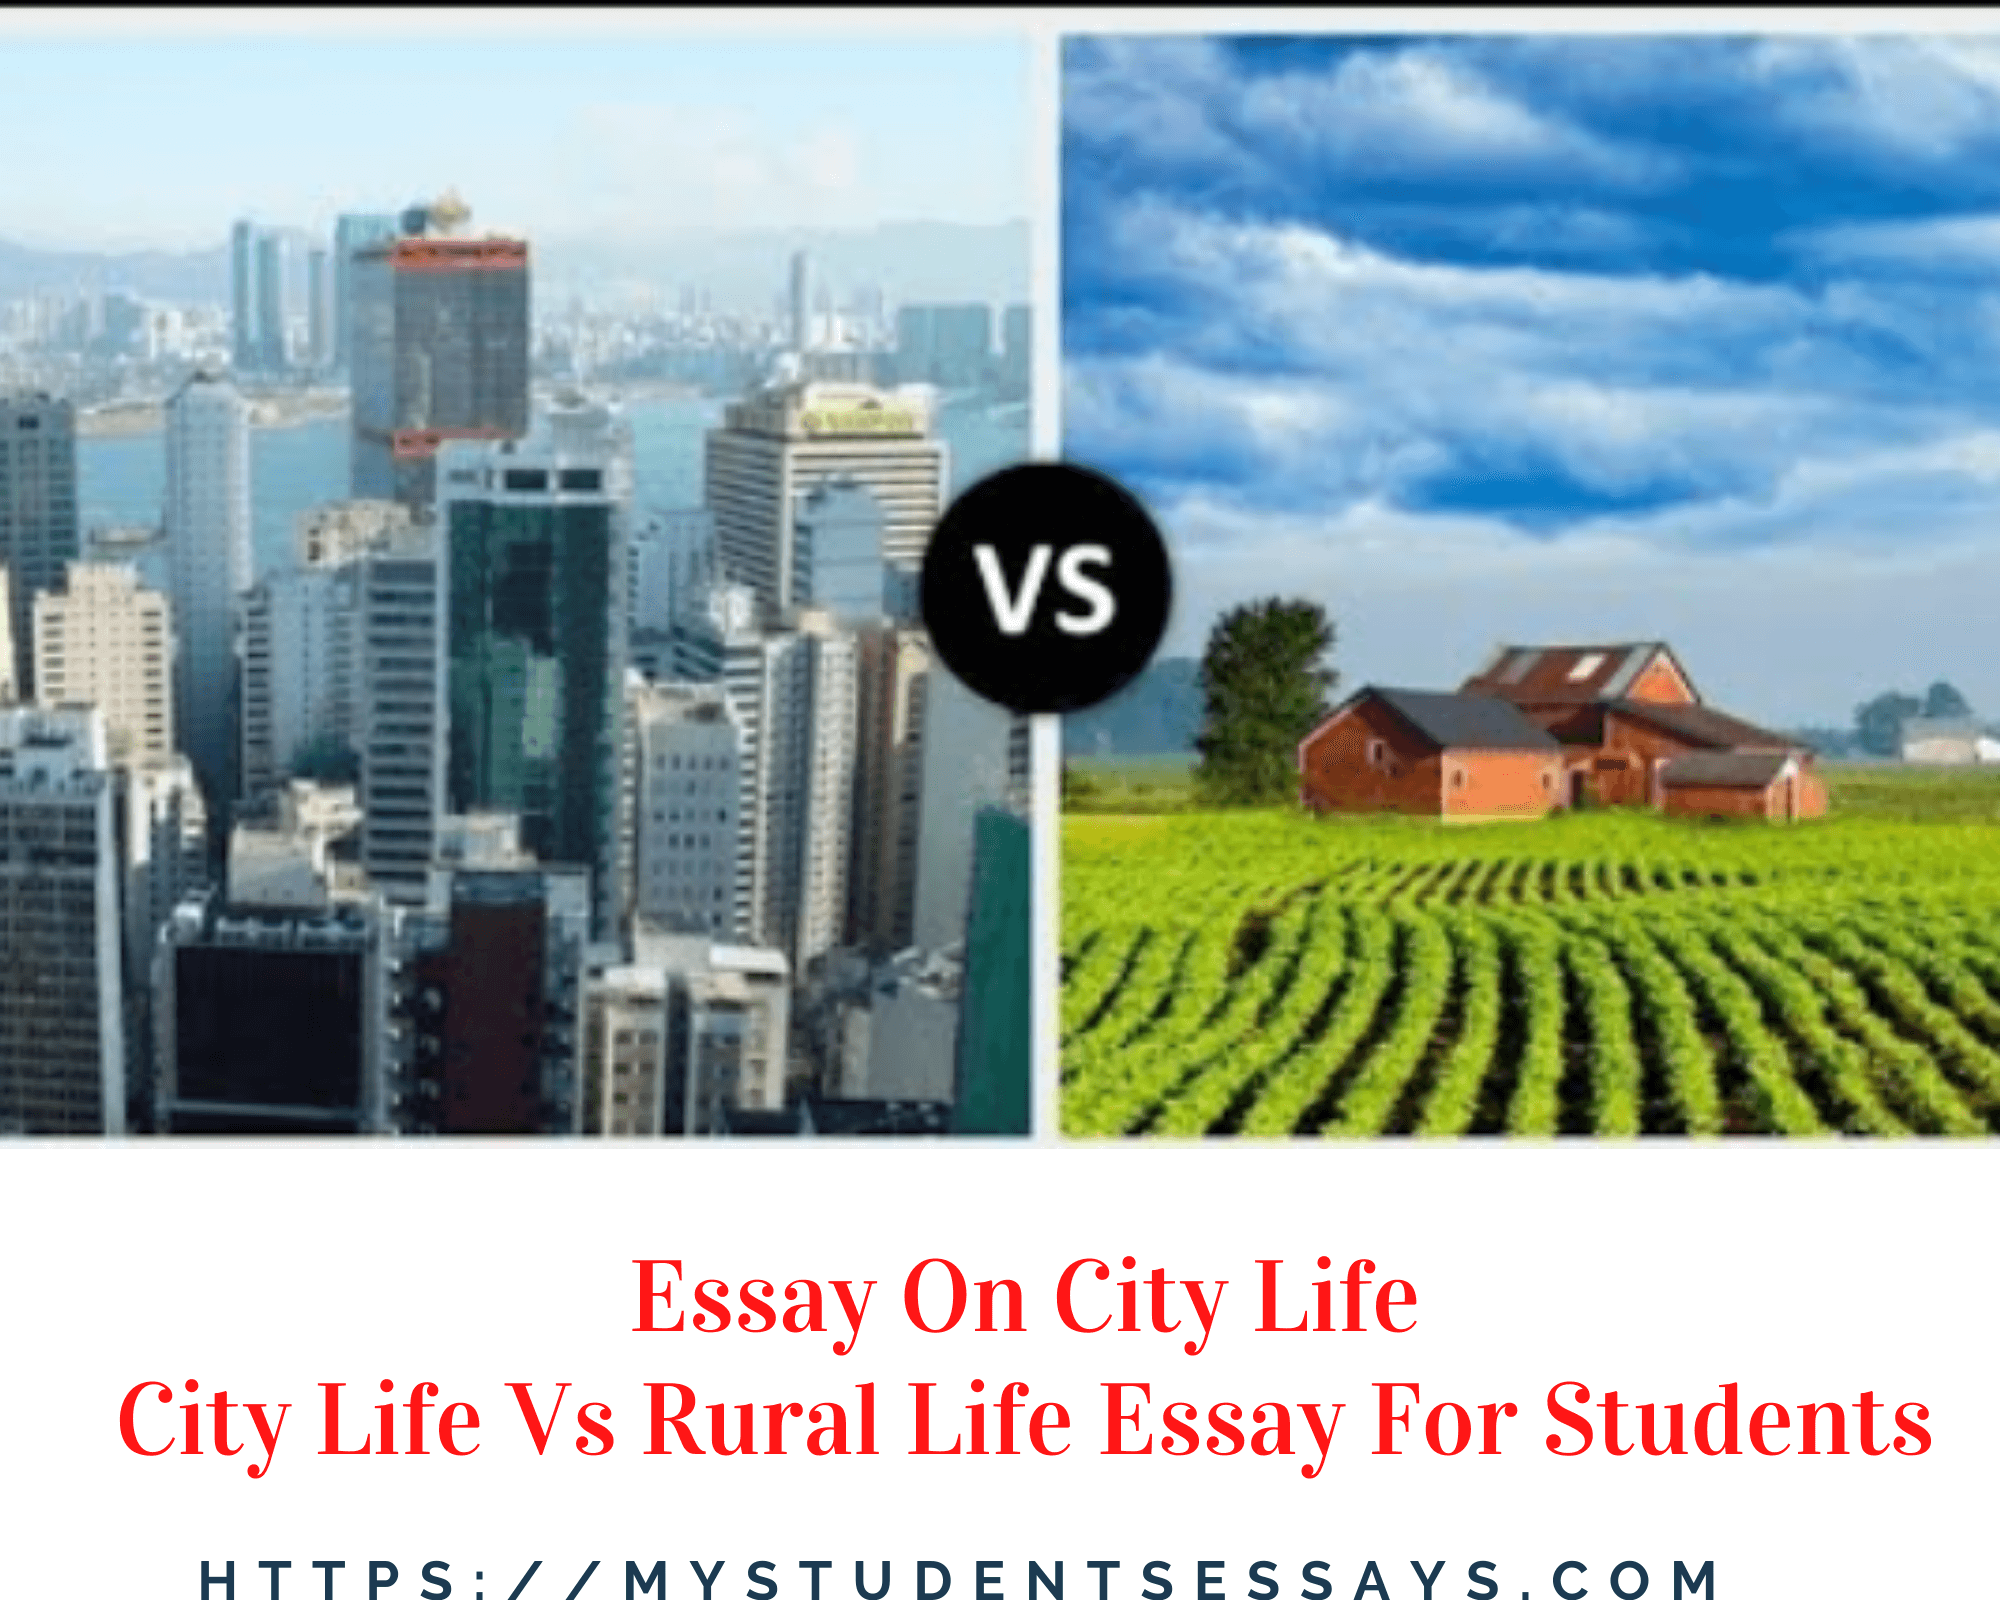 City Life Essay For Children & Students